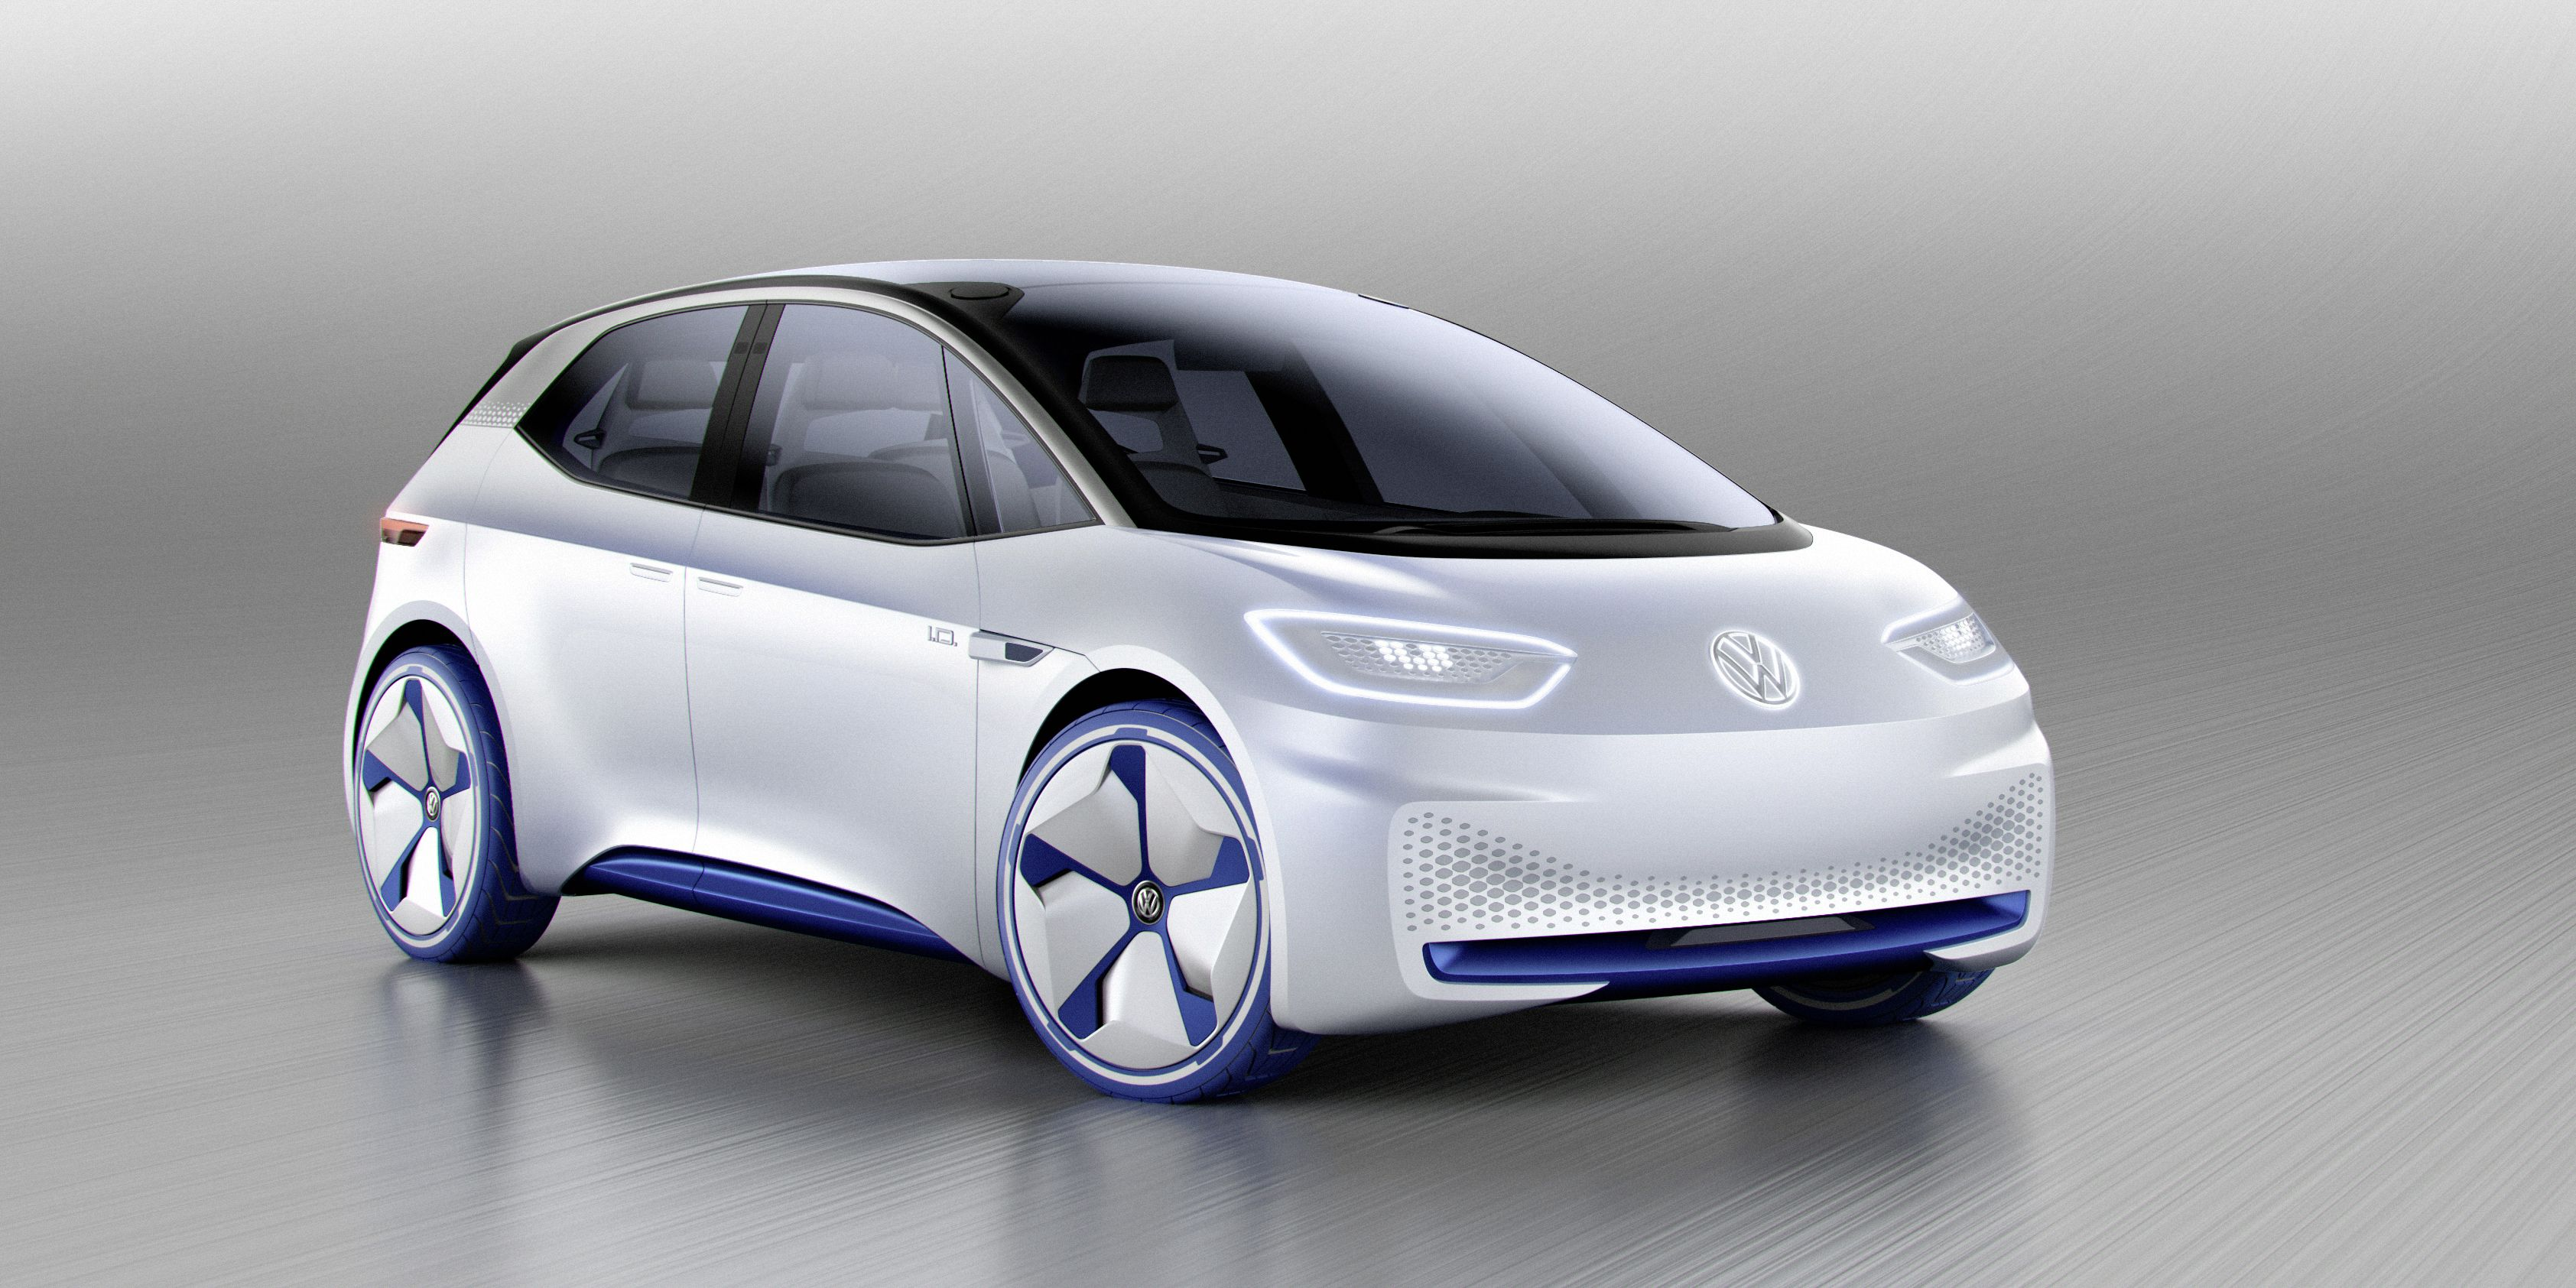 This Electric Concept Car Is The Volkswagen Beetle Of 21st Century